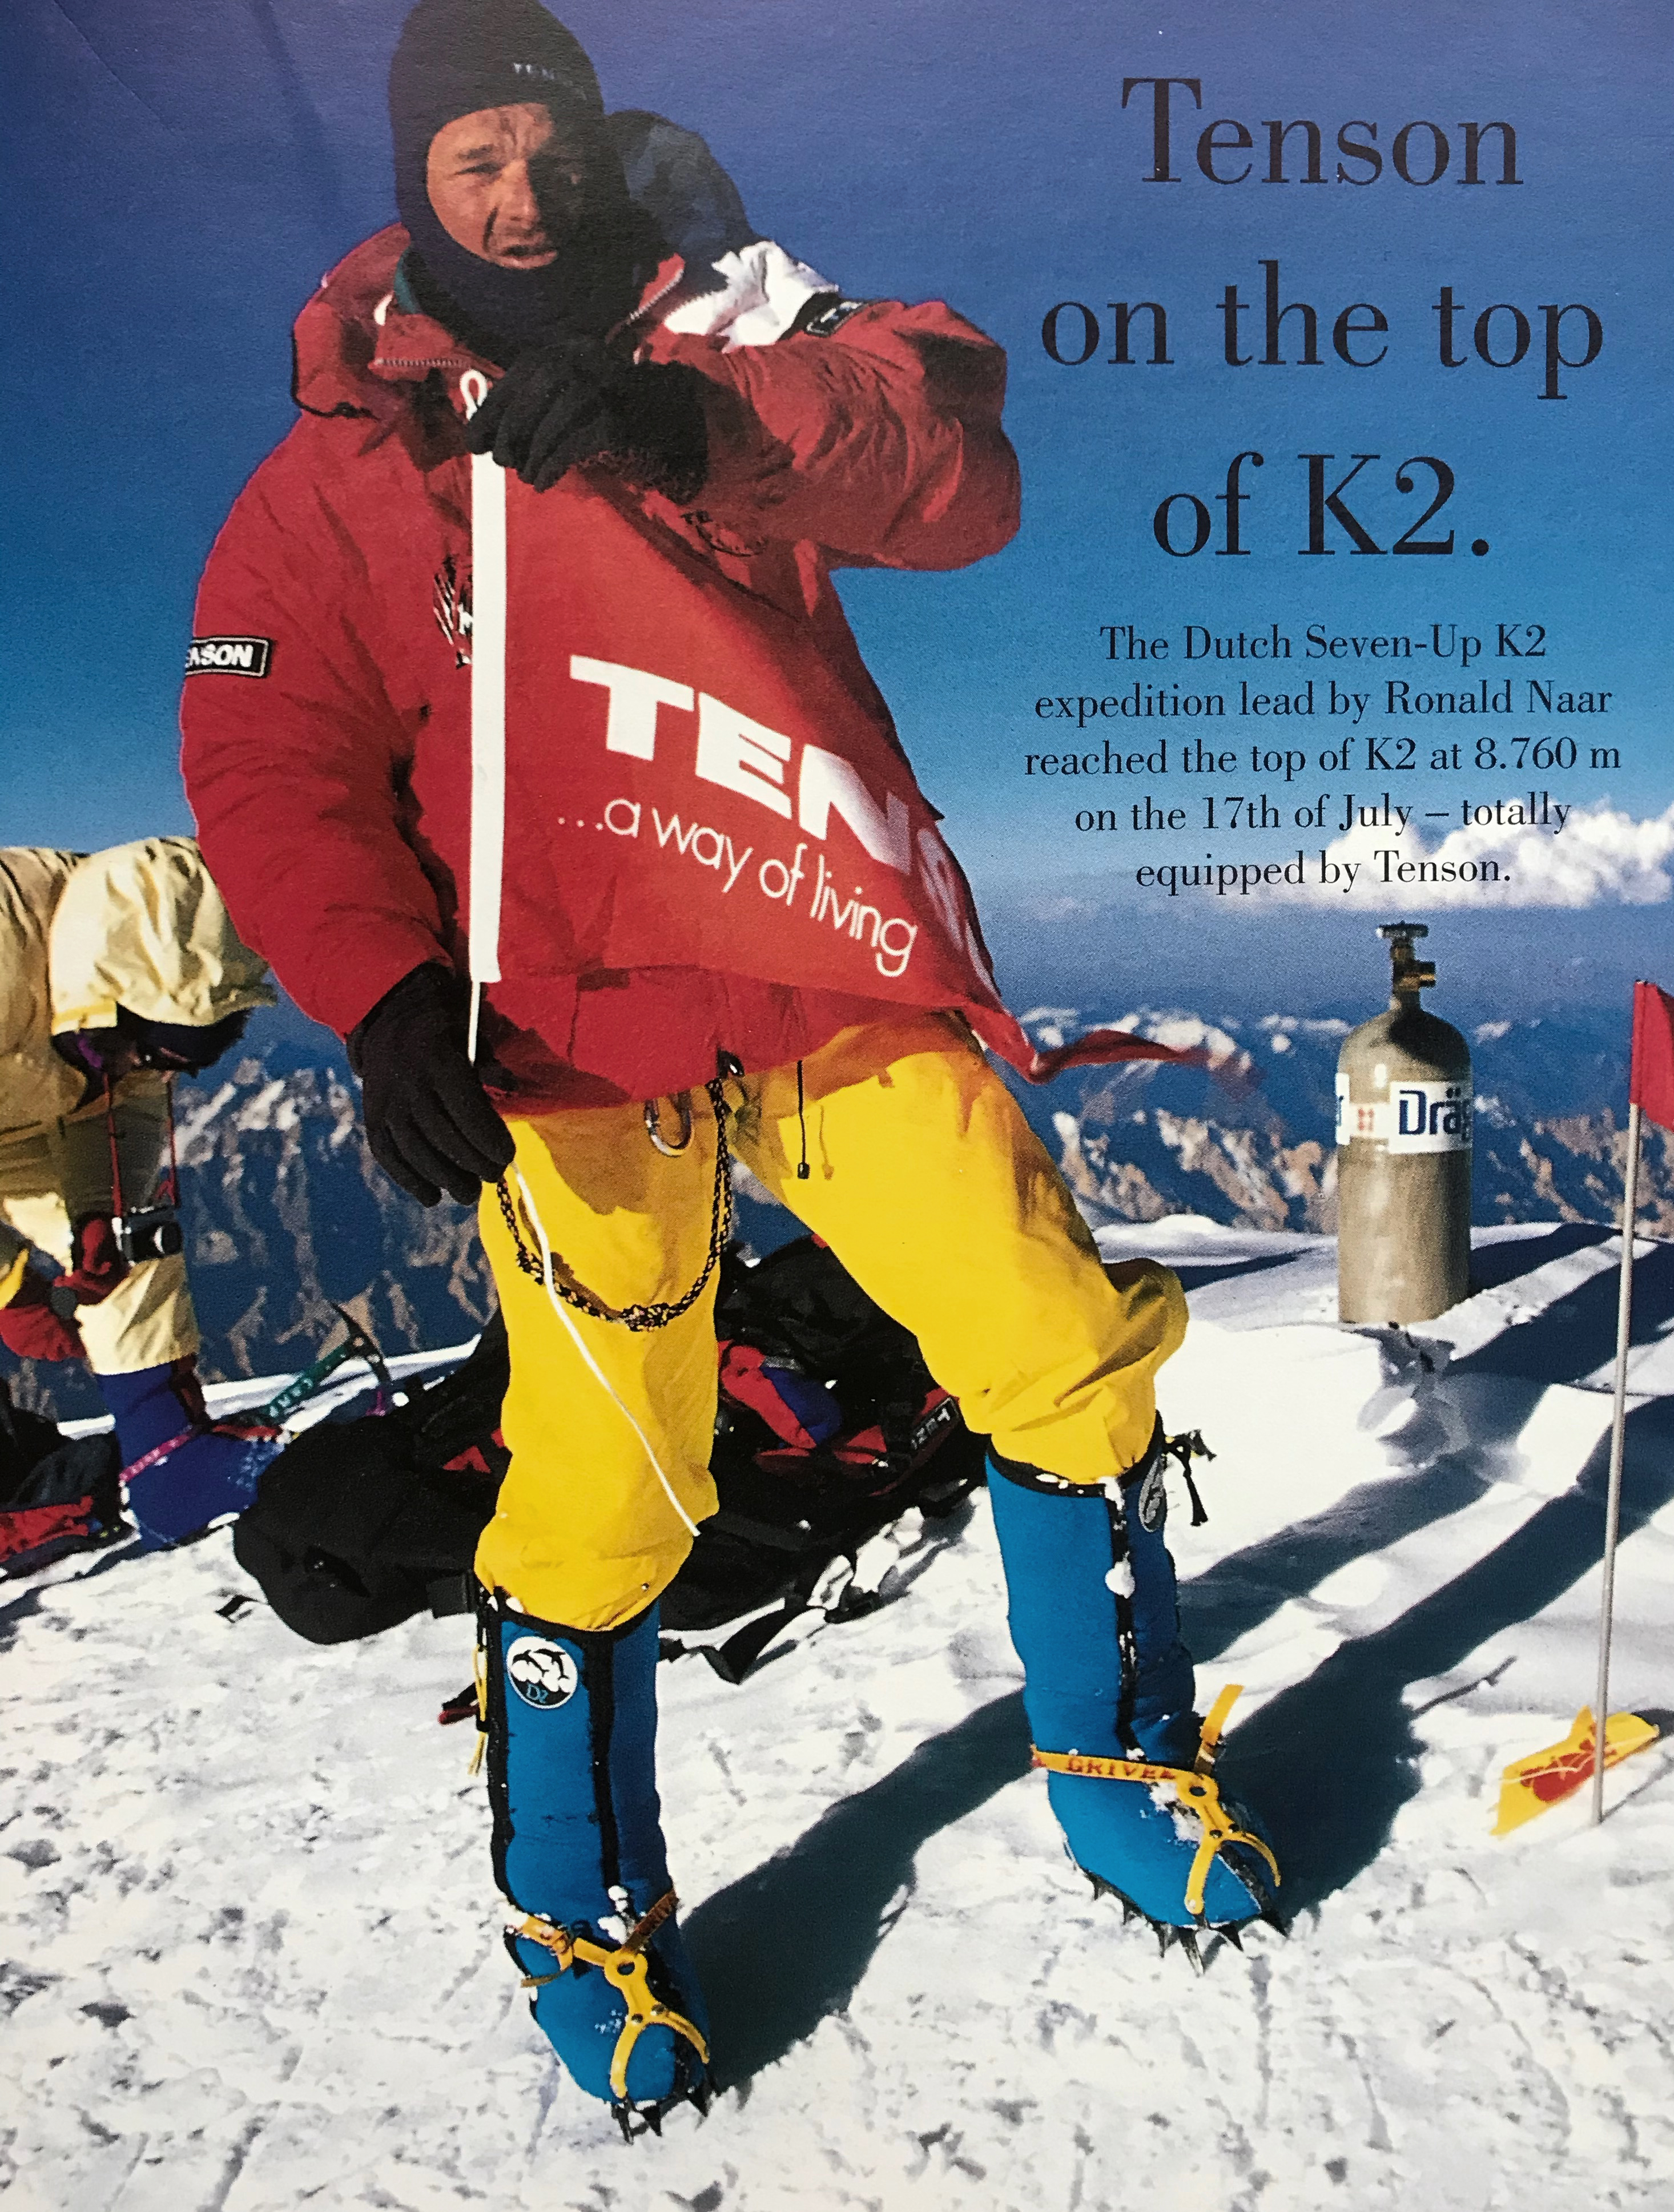 Tenson on the top of K2